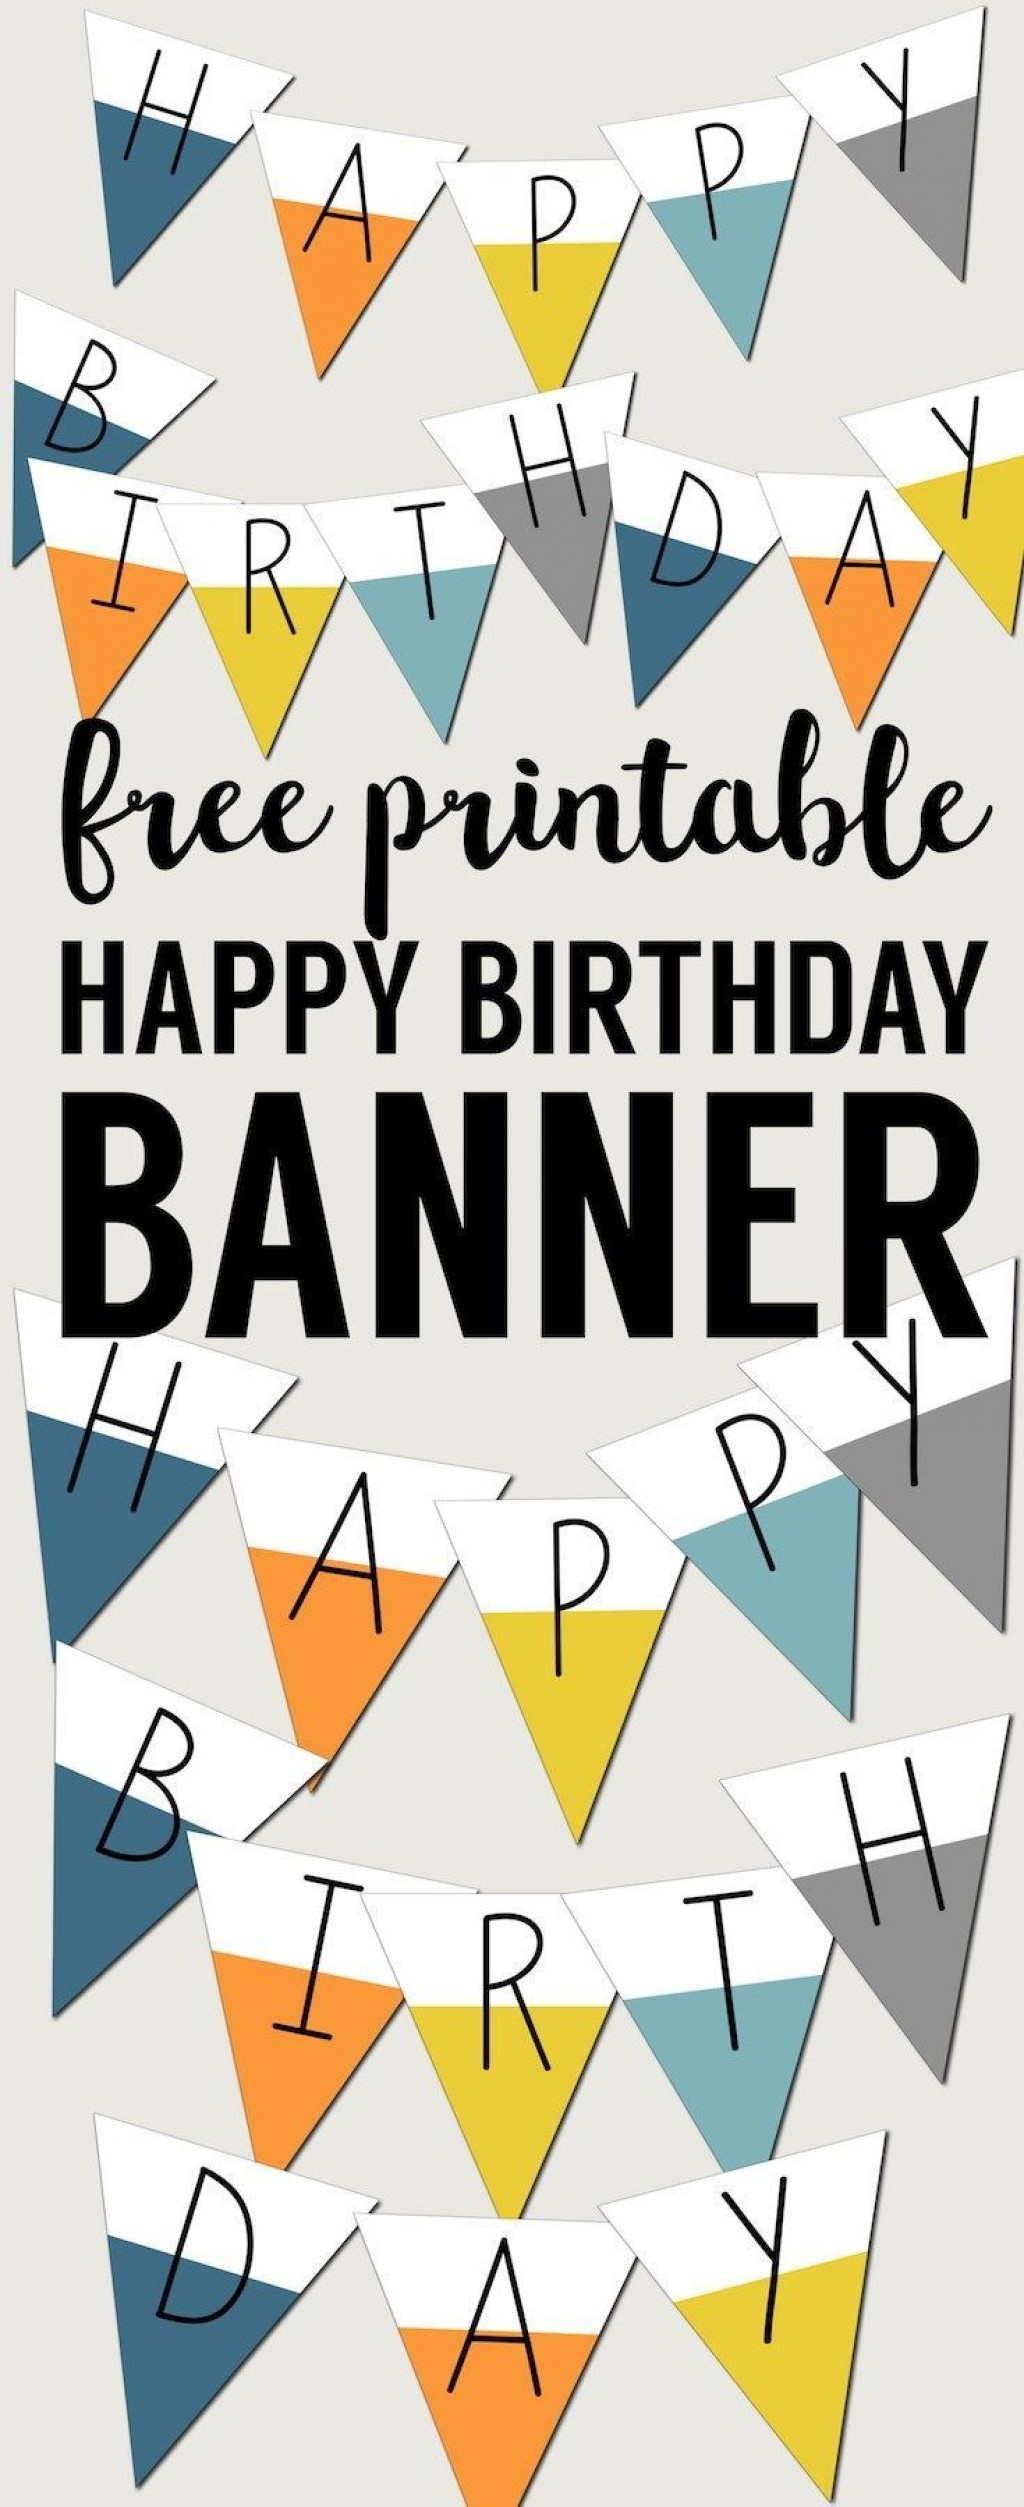 004 Rare Happy Birthday Sign Template Idea  Banner Printable Pdf Free WordLarge